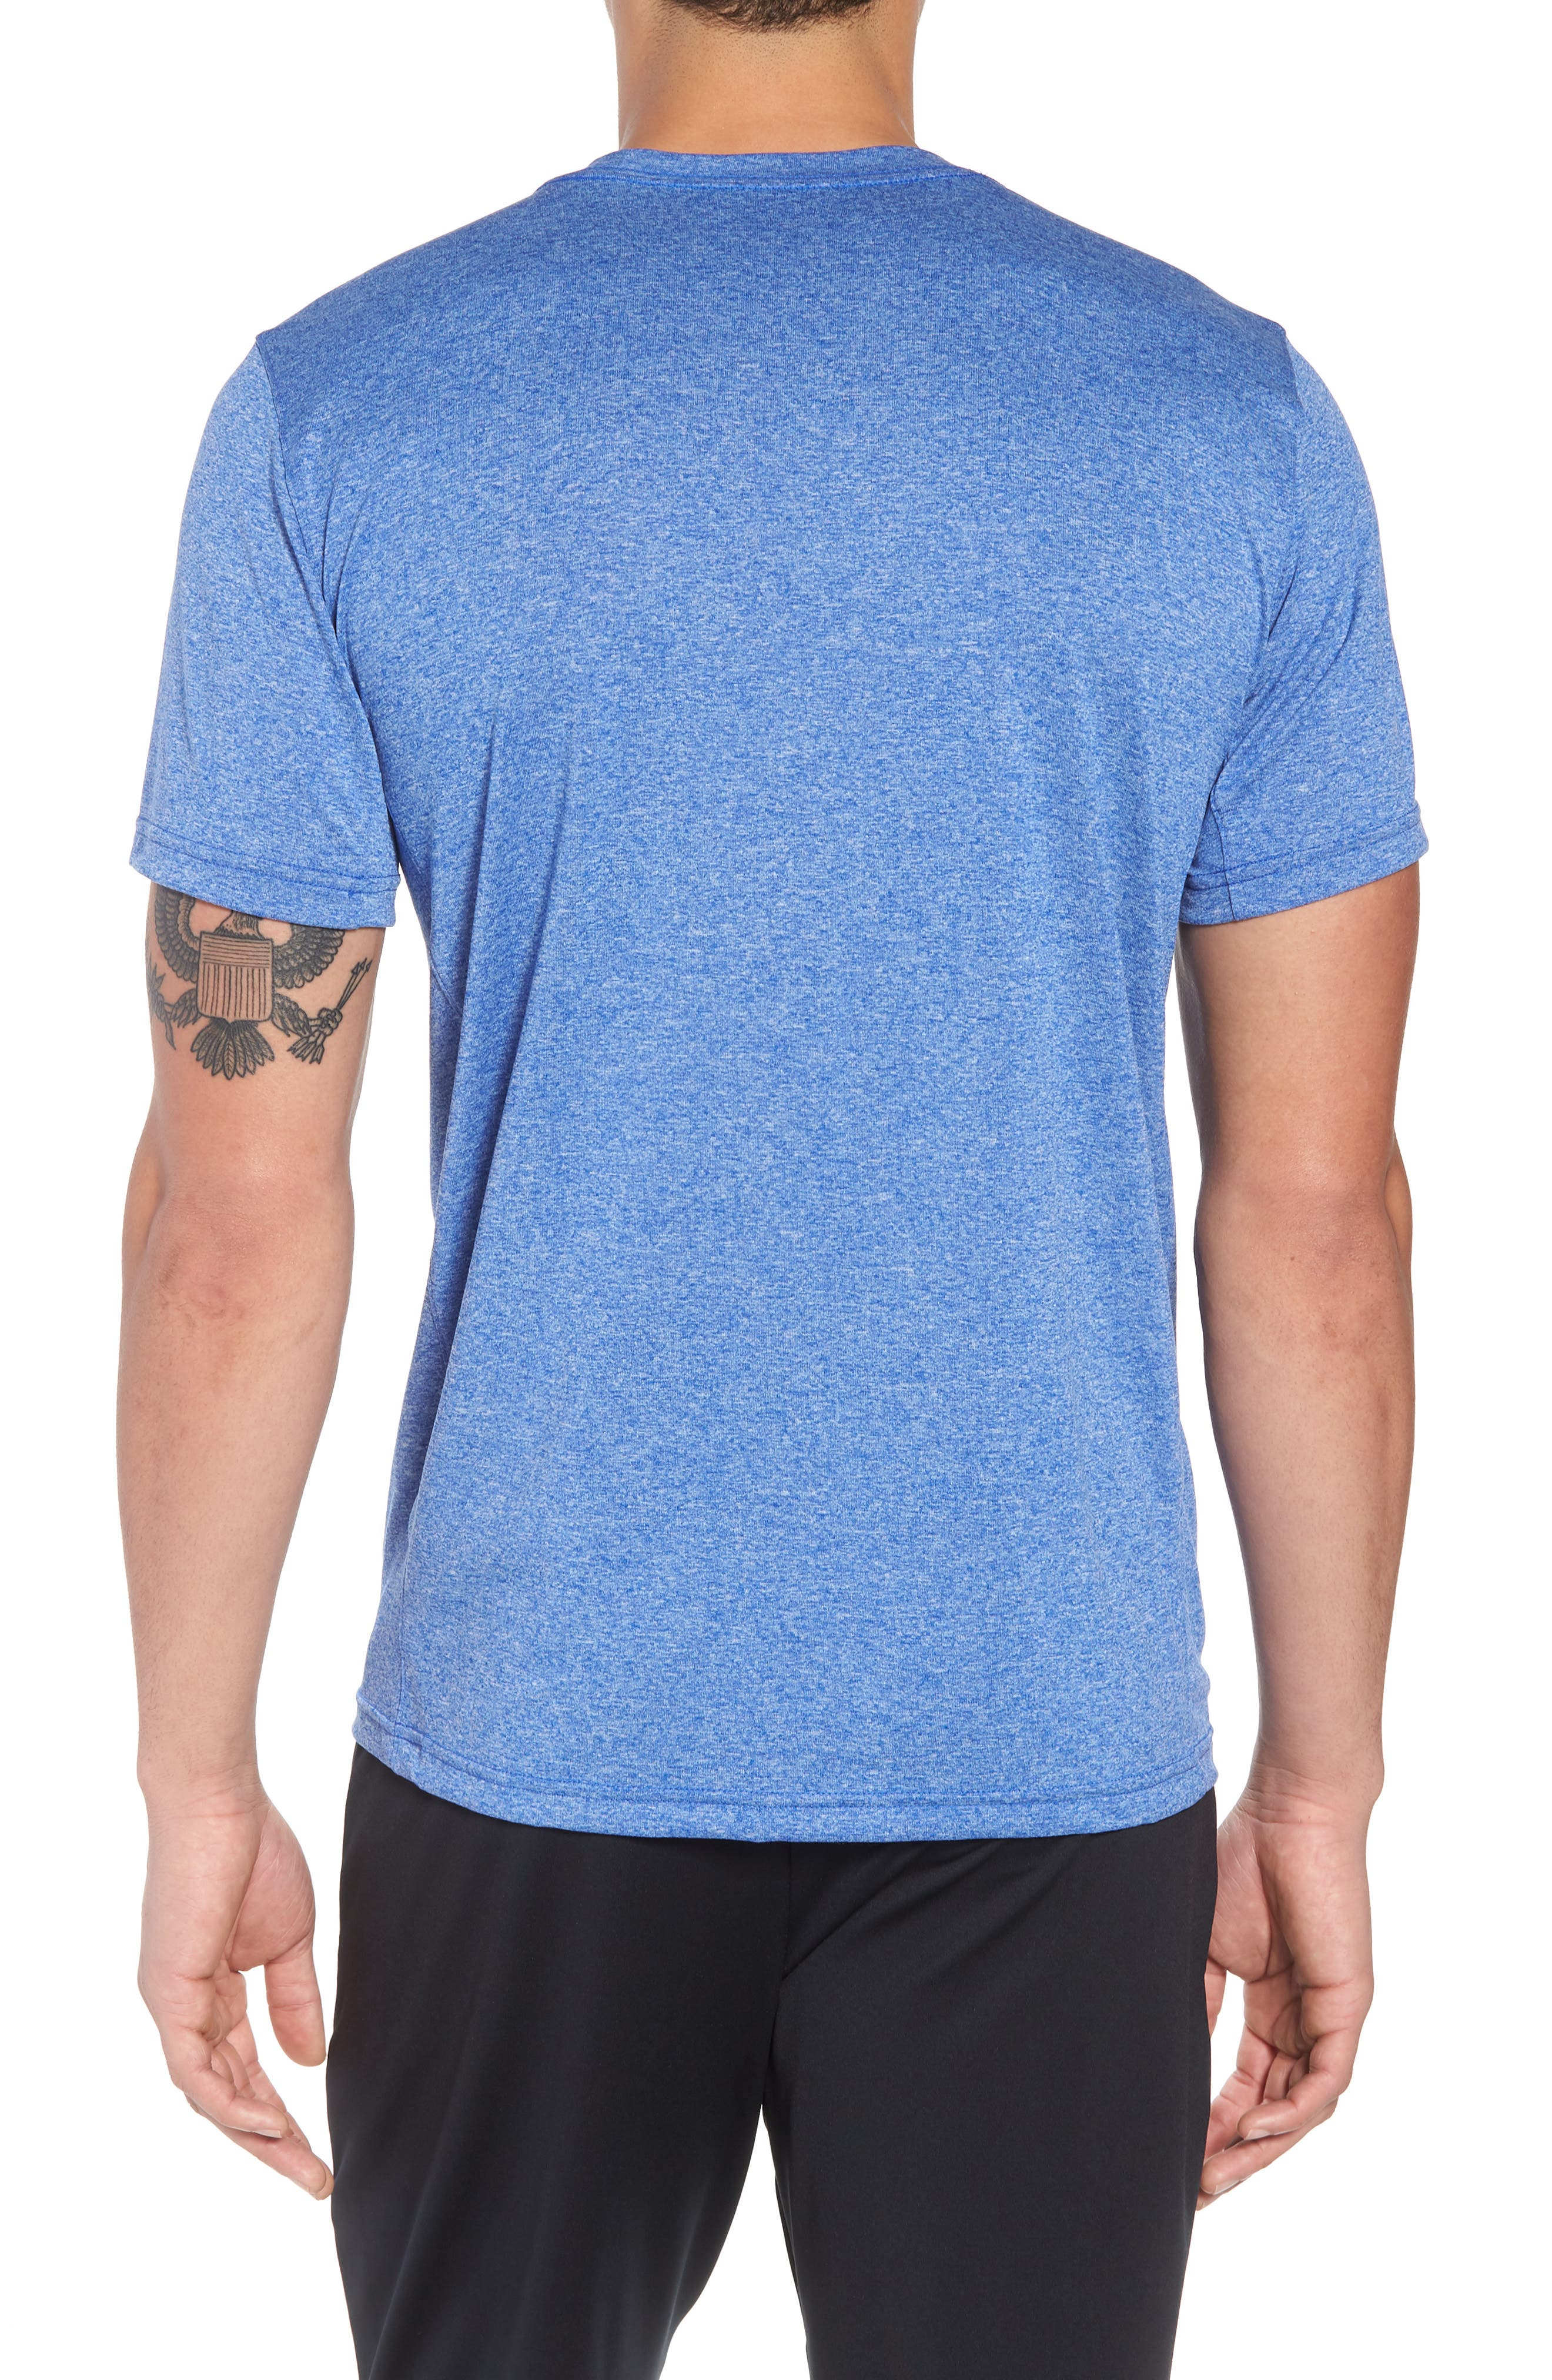 Legend 2.0 Dri-FIT Graphic T-Shirt,                             Alternate thumbnail 2, color,                             Hyper Royal/ Ocean/ Heather